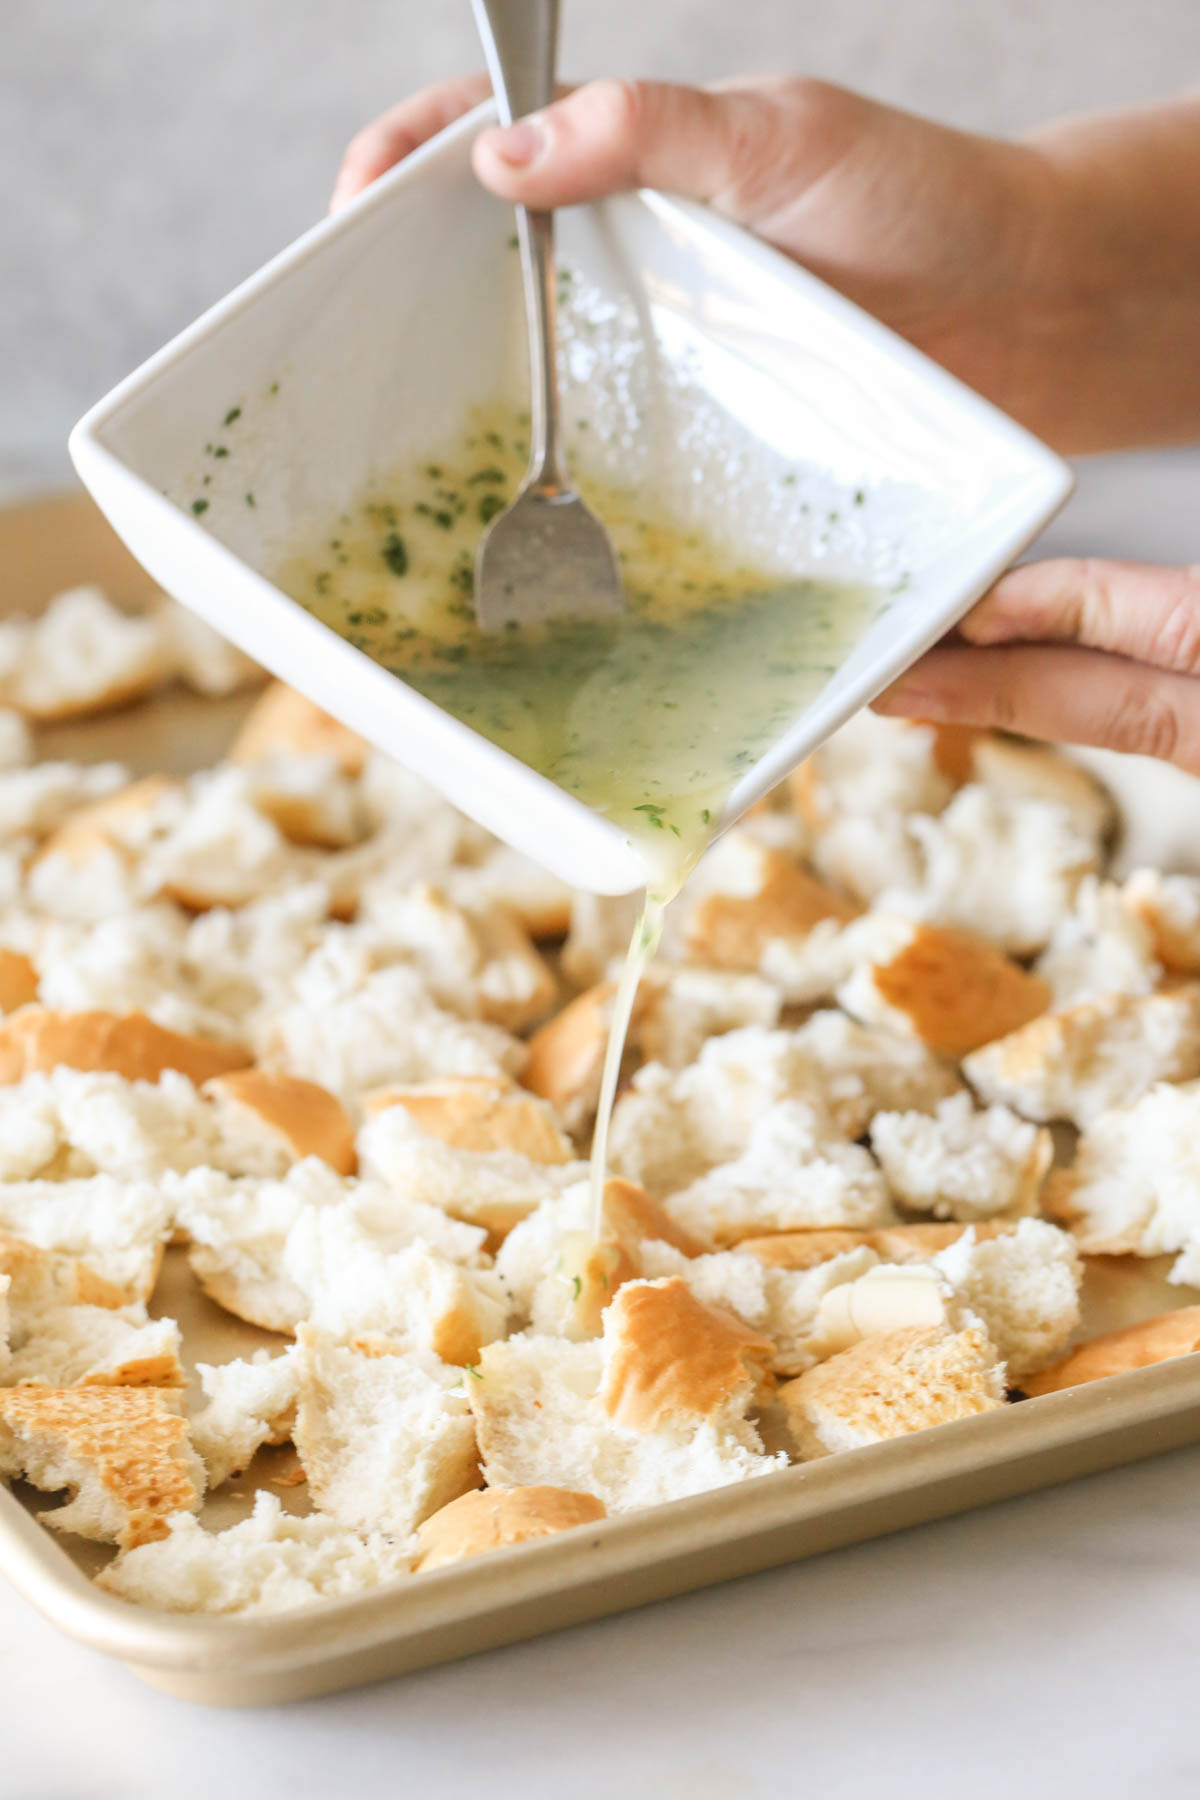 The butter mixture in a square bowl being poured over the French bread pieces on the baking sheet to make Rustic Buttery Garlic Croutons.